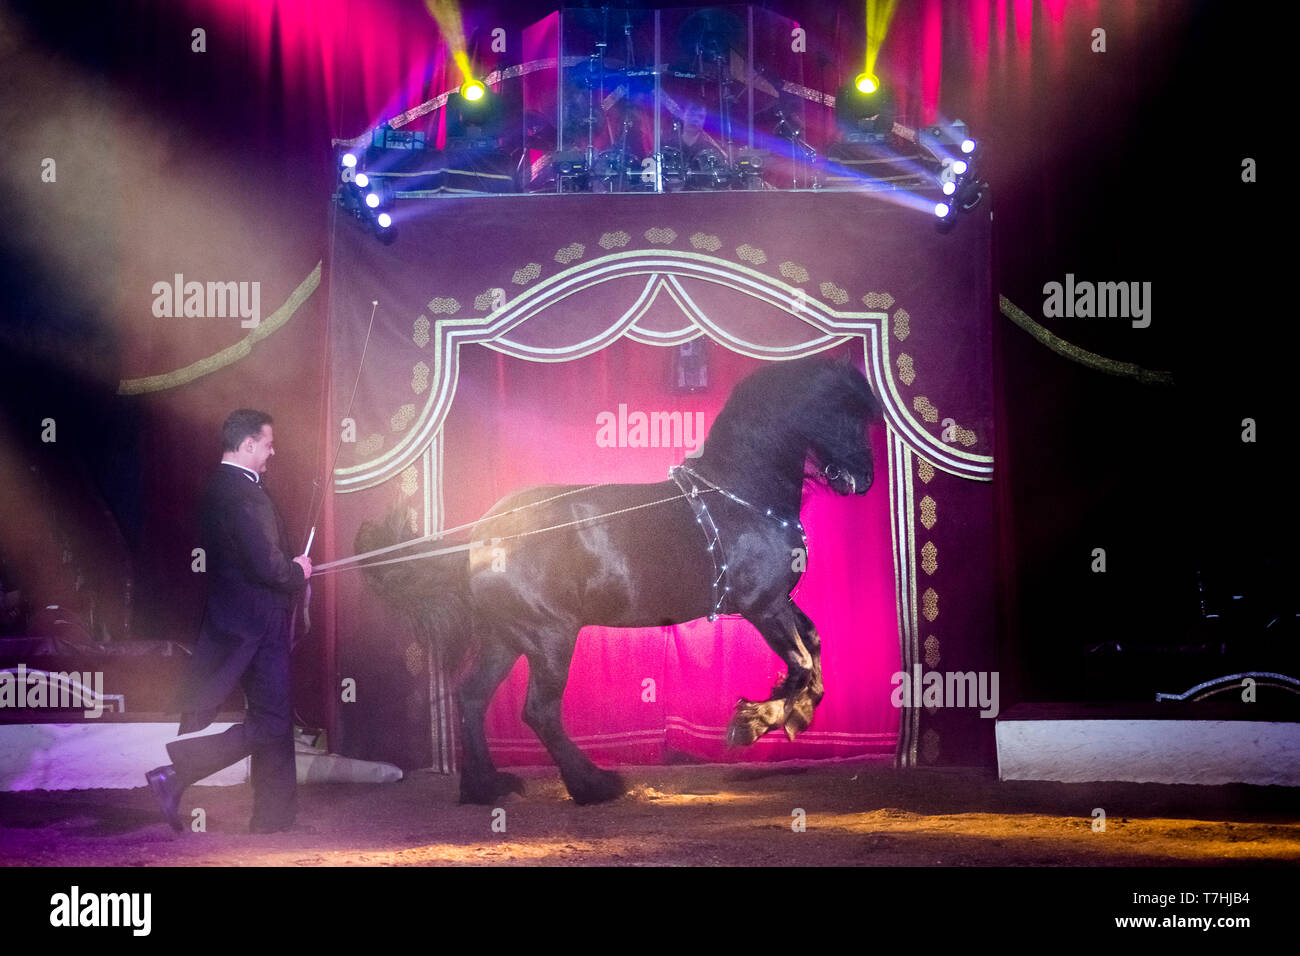 Louis Knie junior in his circus, showing a Friesian stallon at long-rein, performing a pirouette. Austria. Austria - Stock Image